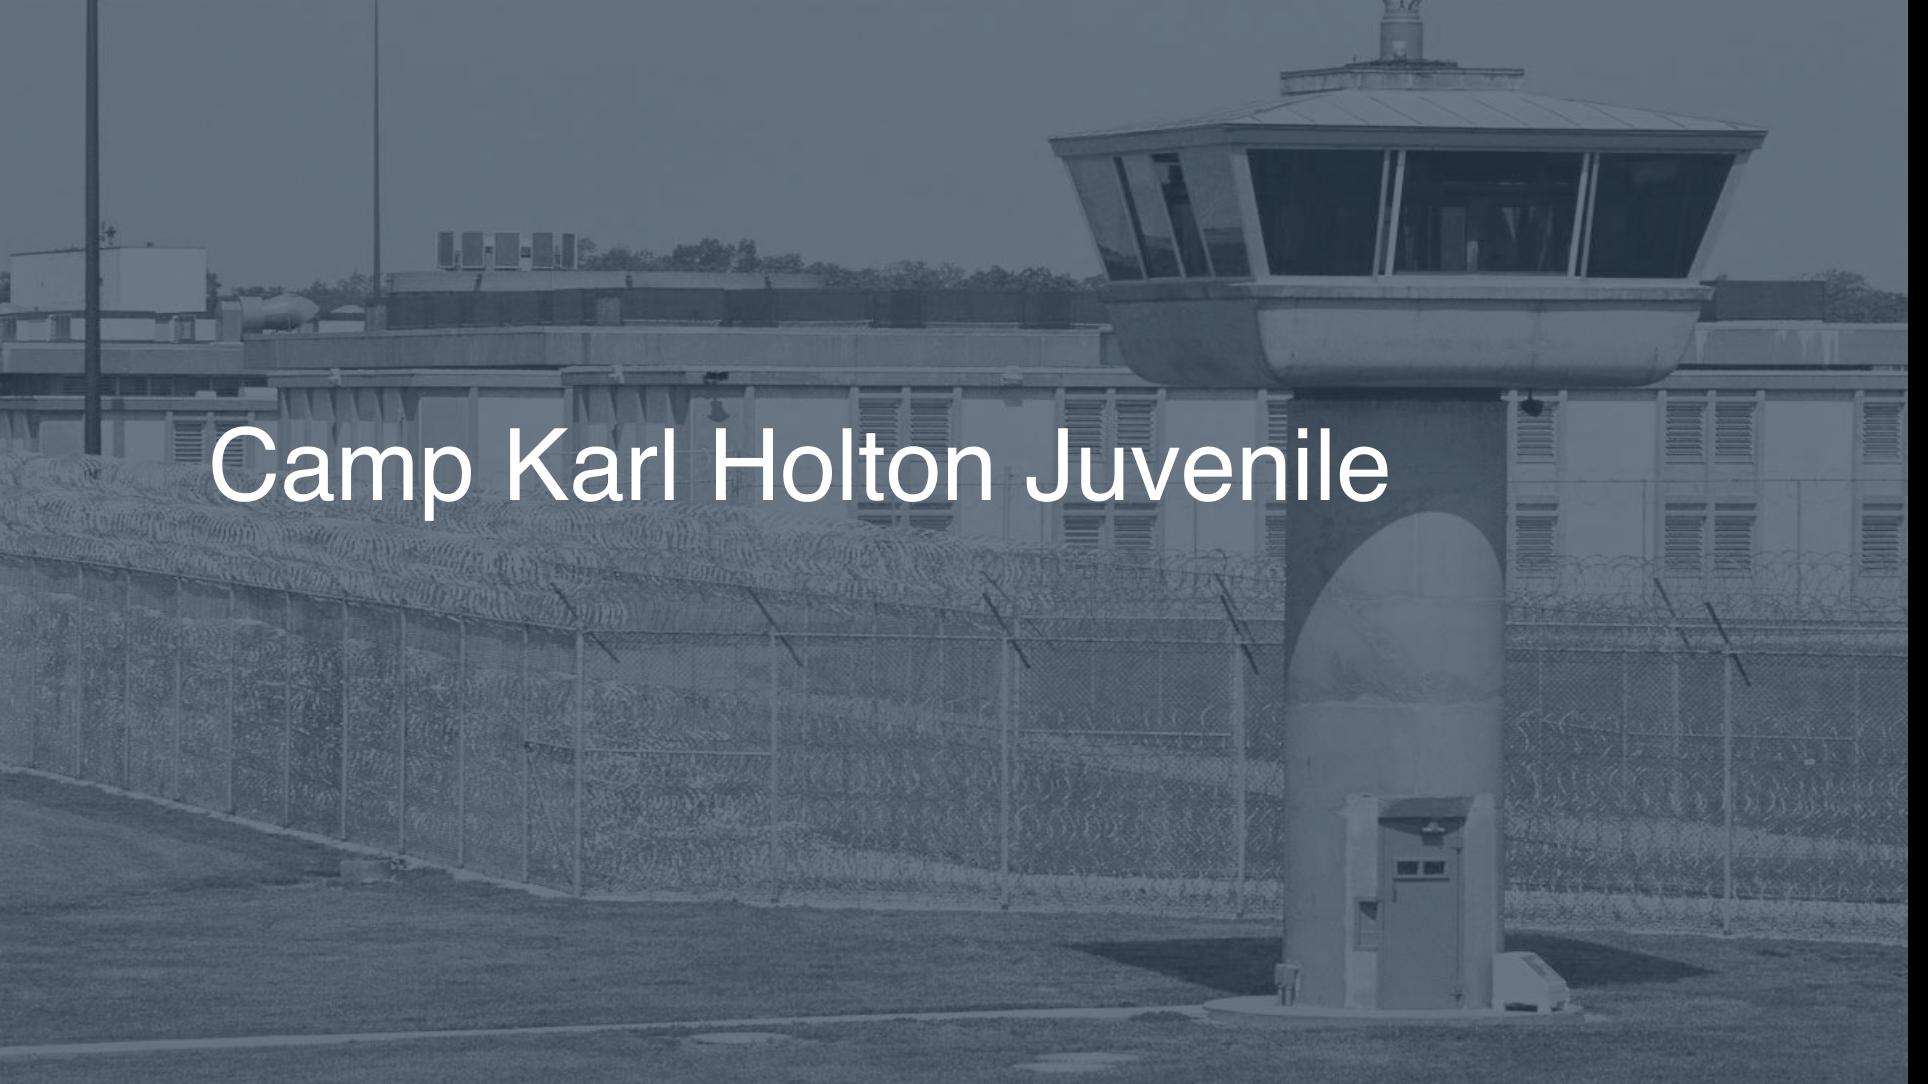 Camp Karl Holton (Juvenile) correctional facility picture